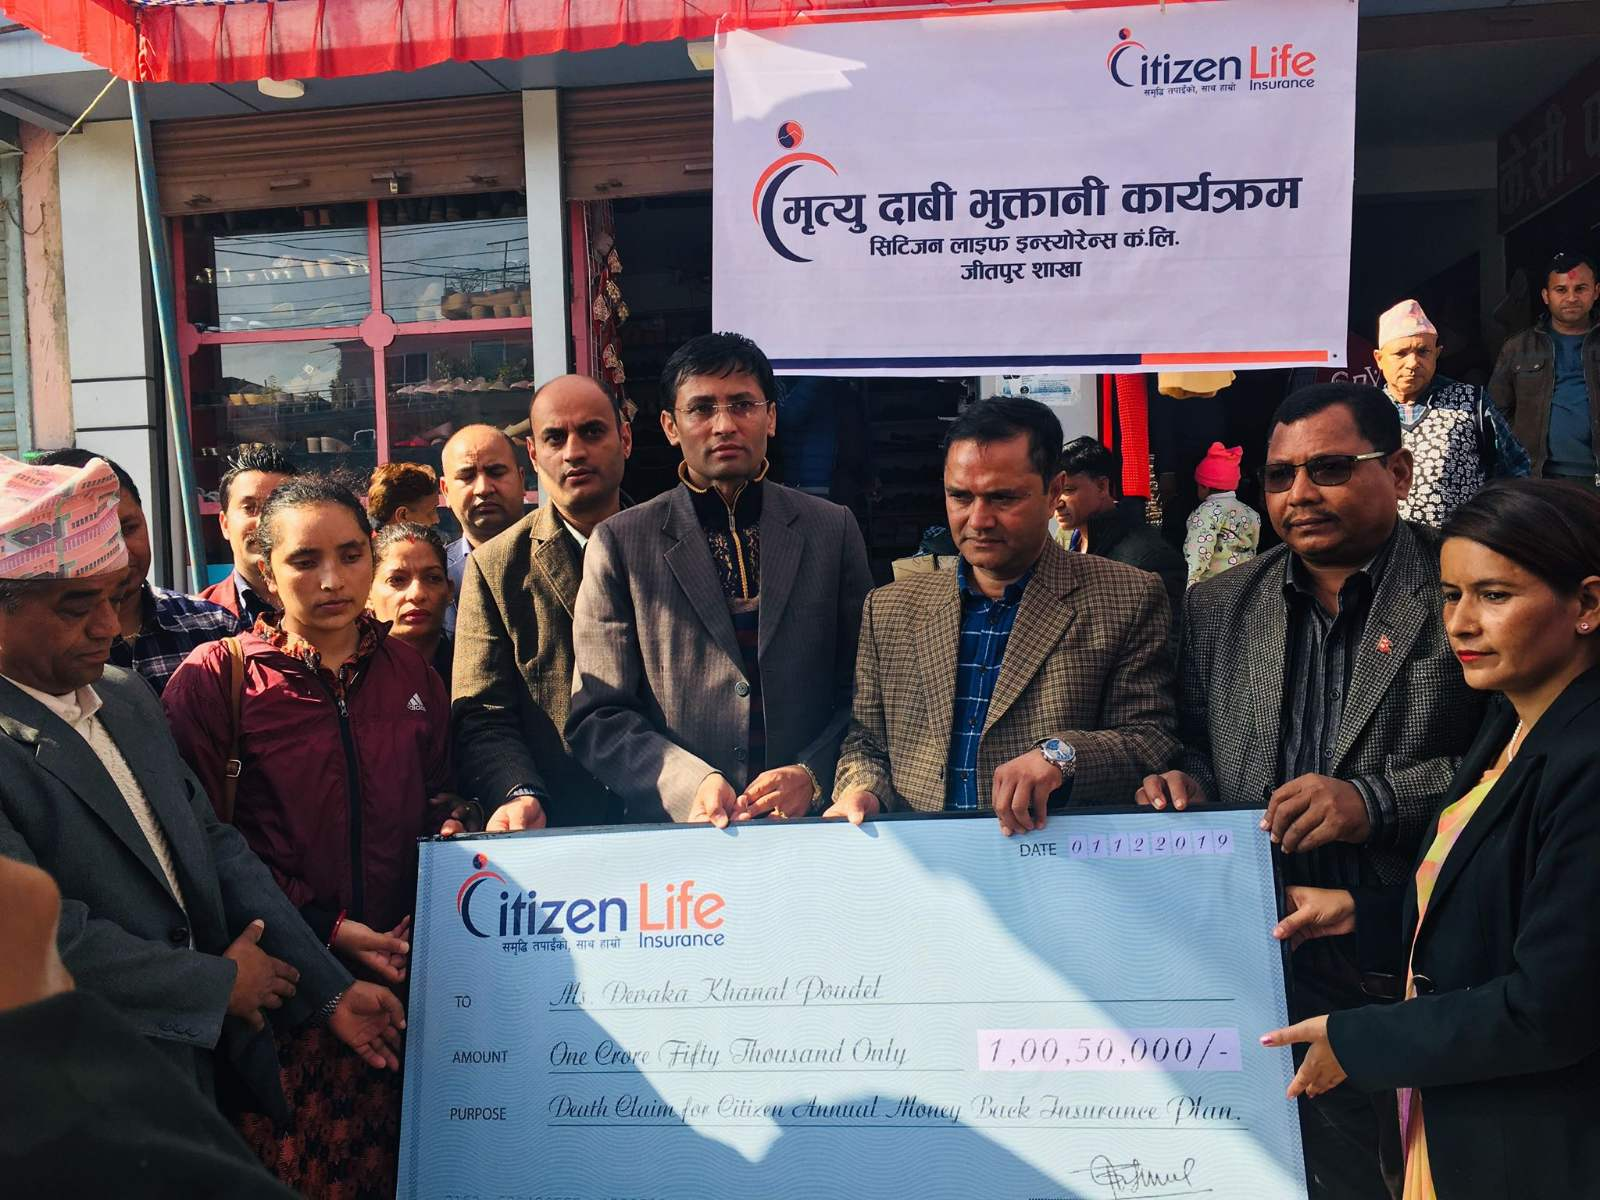 Citizen Life Insurance pays life insurance death compensation of Rs.1 Crore 50 Thousand